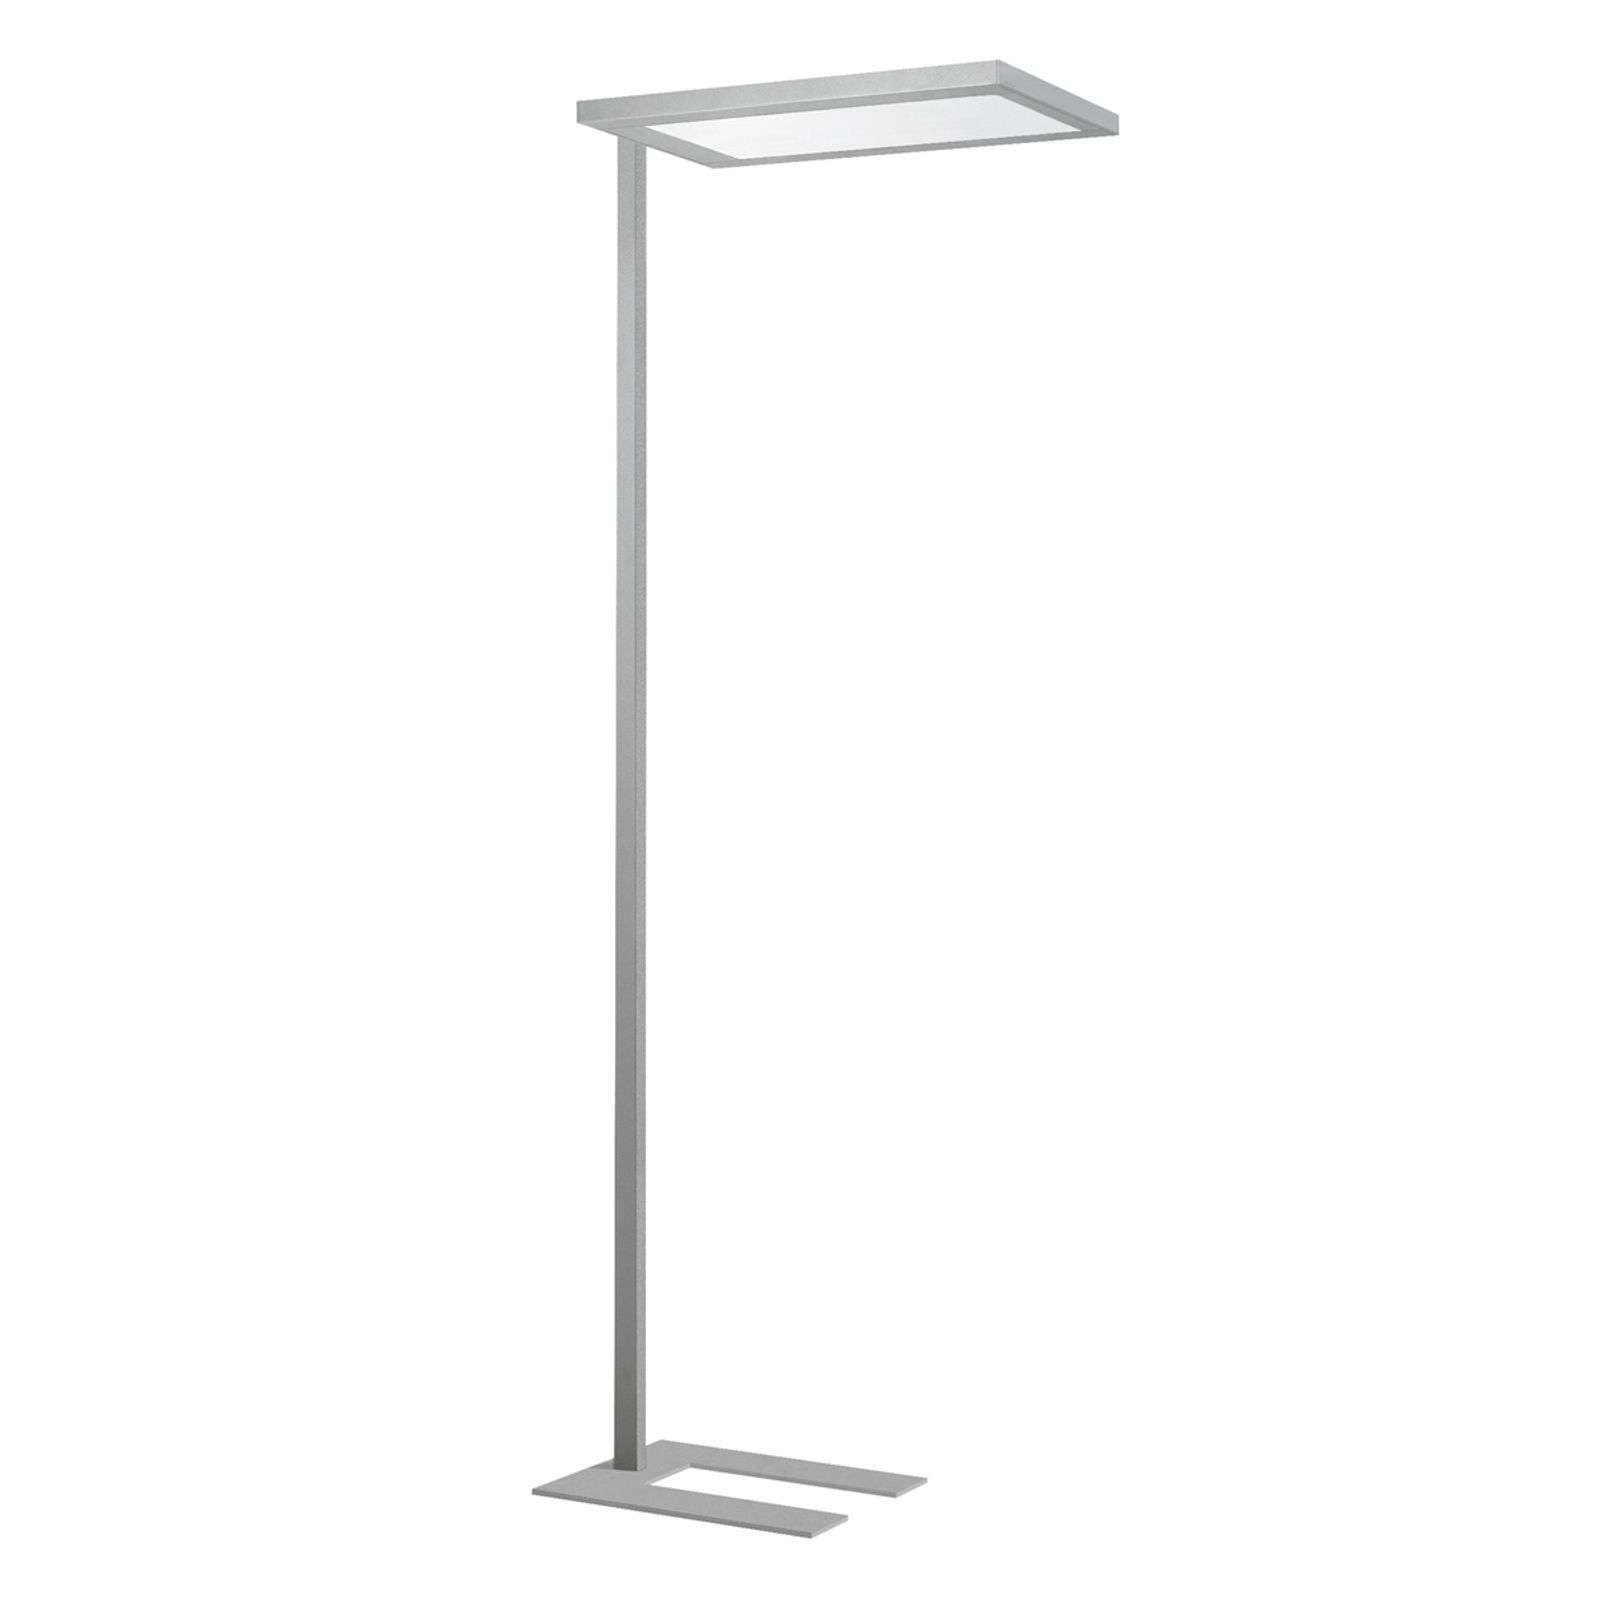 Lampadaire SL 730 avec microprisme direct indirect